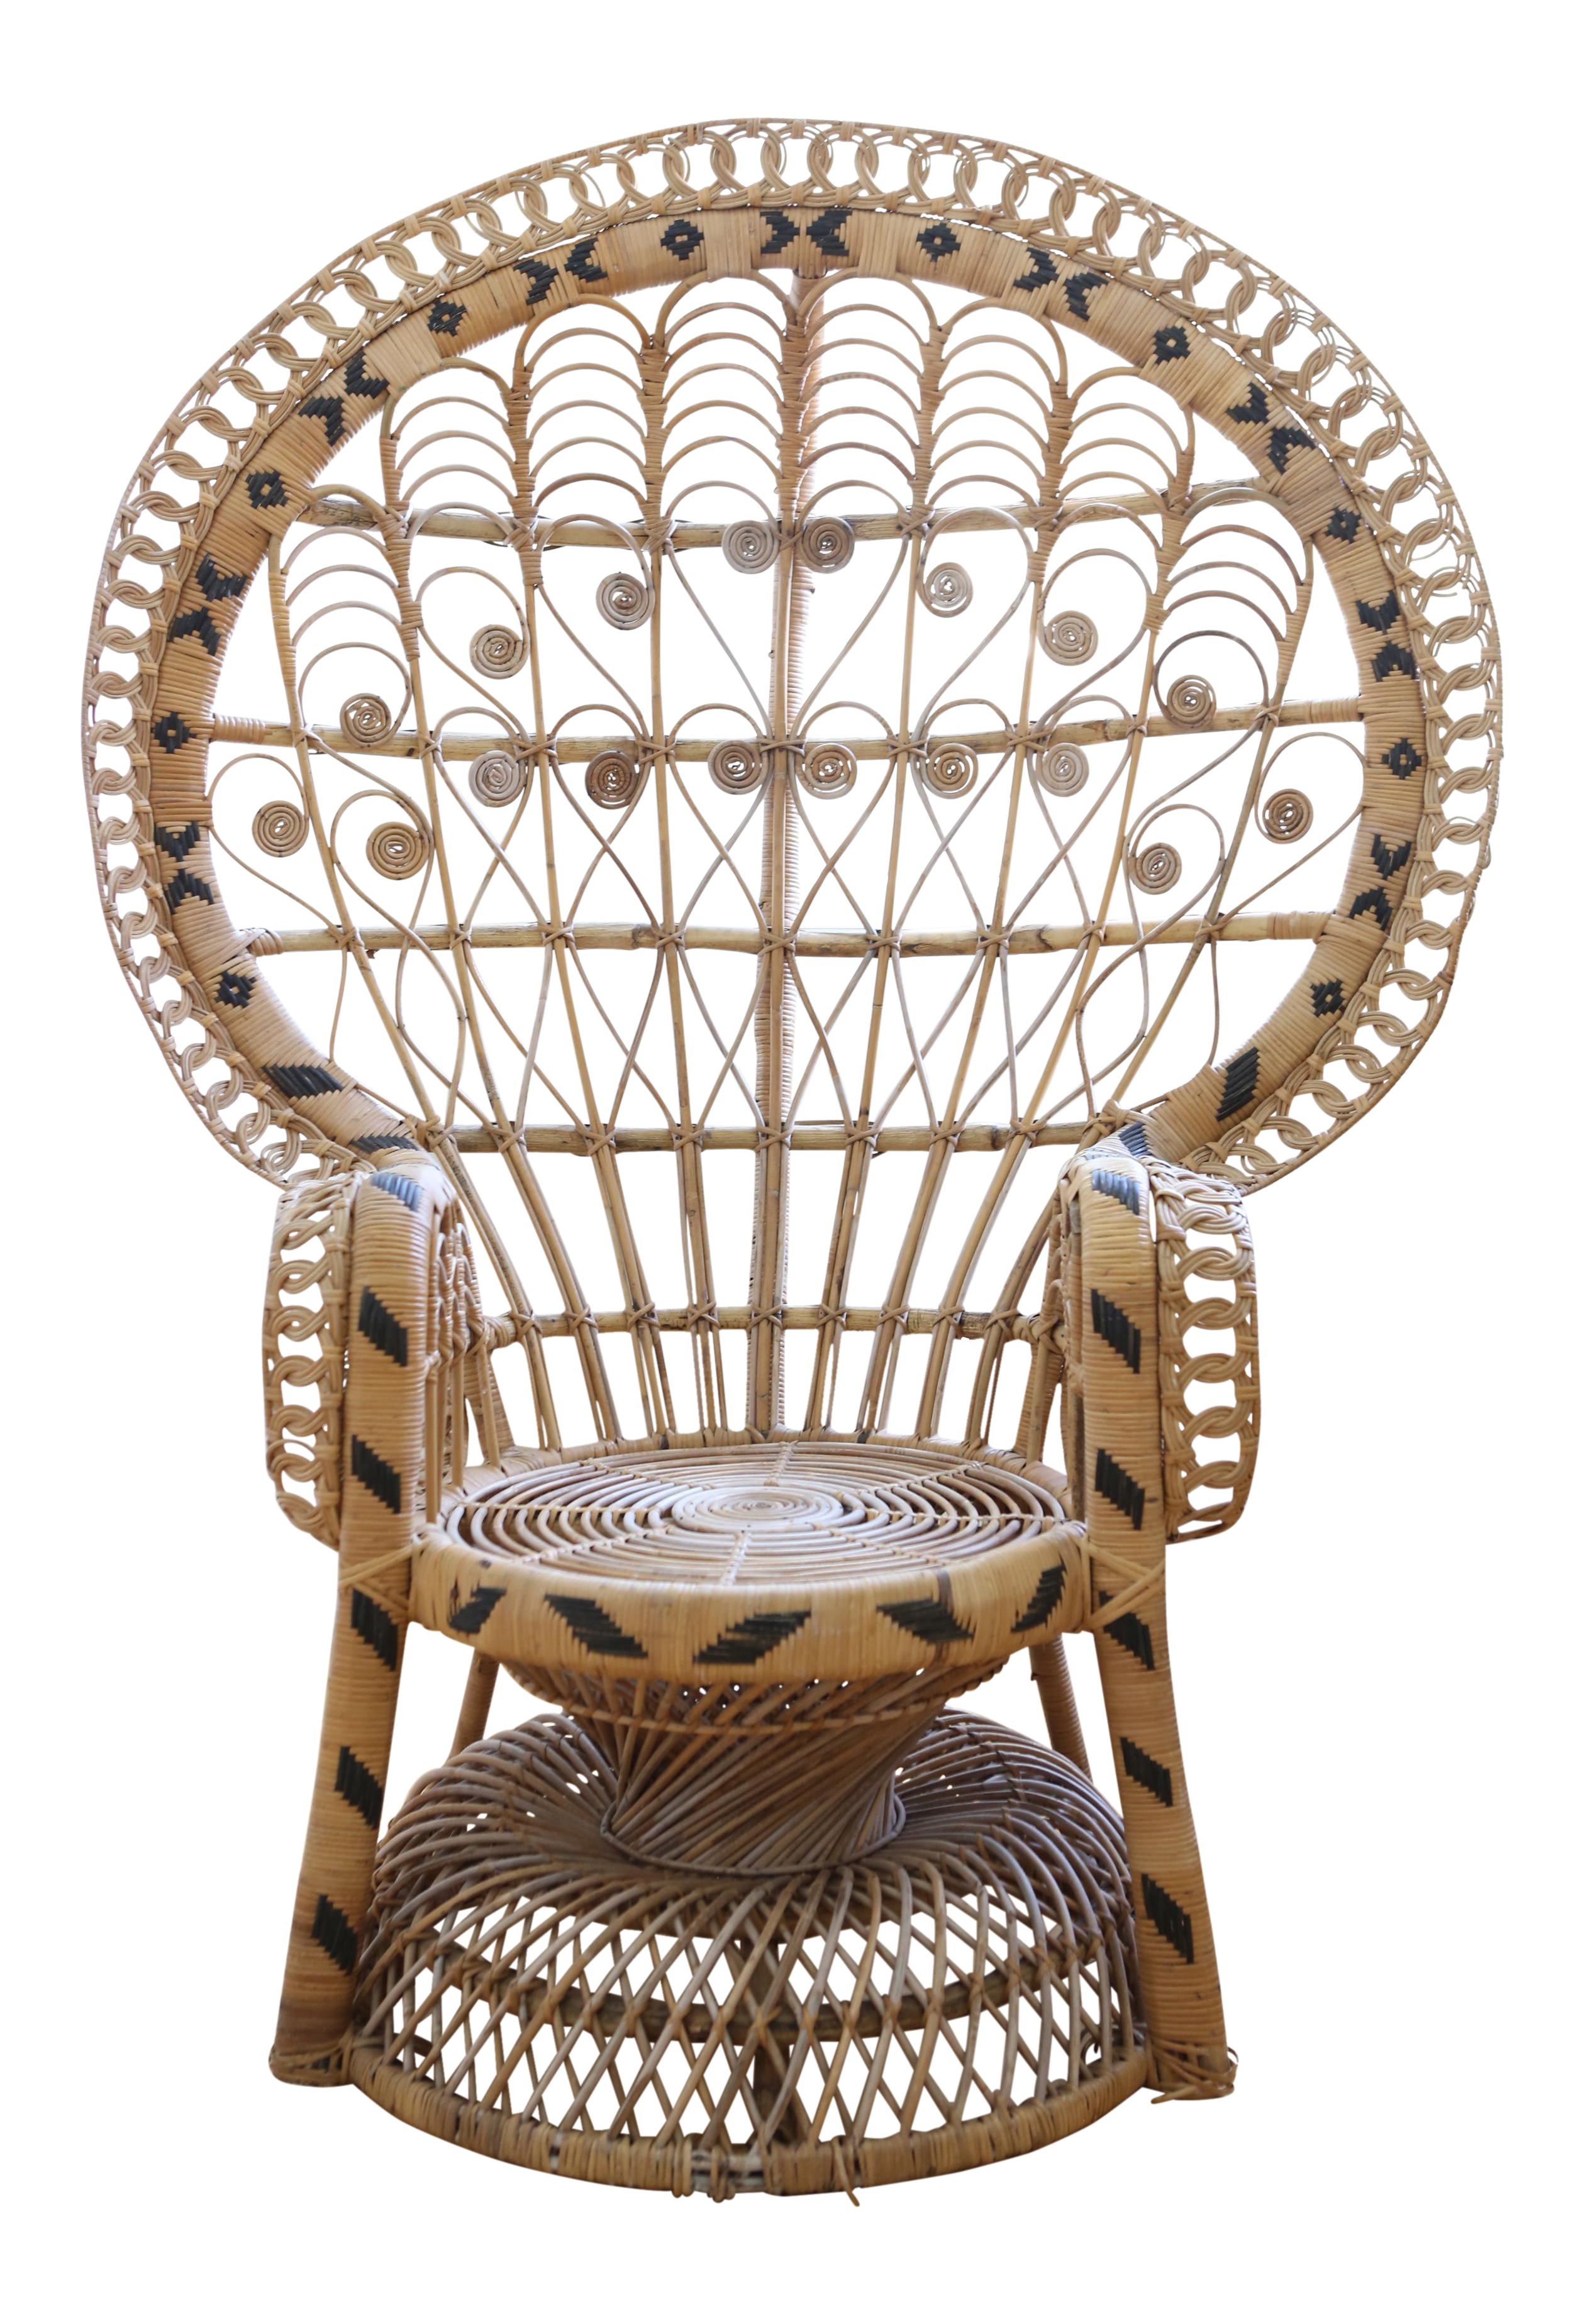 Painted peacock chair - Vintage Rattan And Wicker Peacock Chair